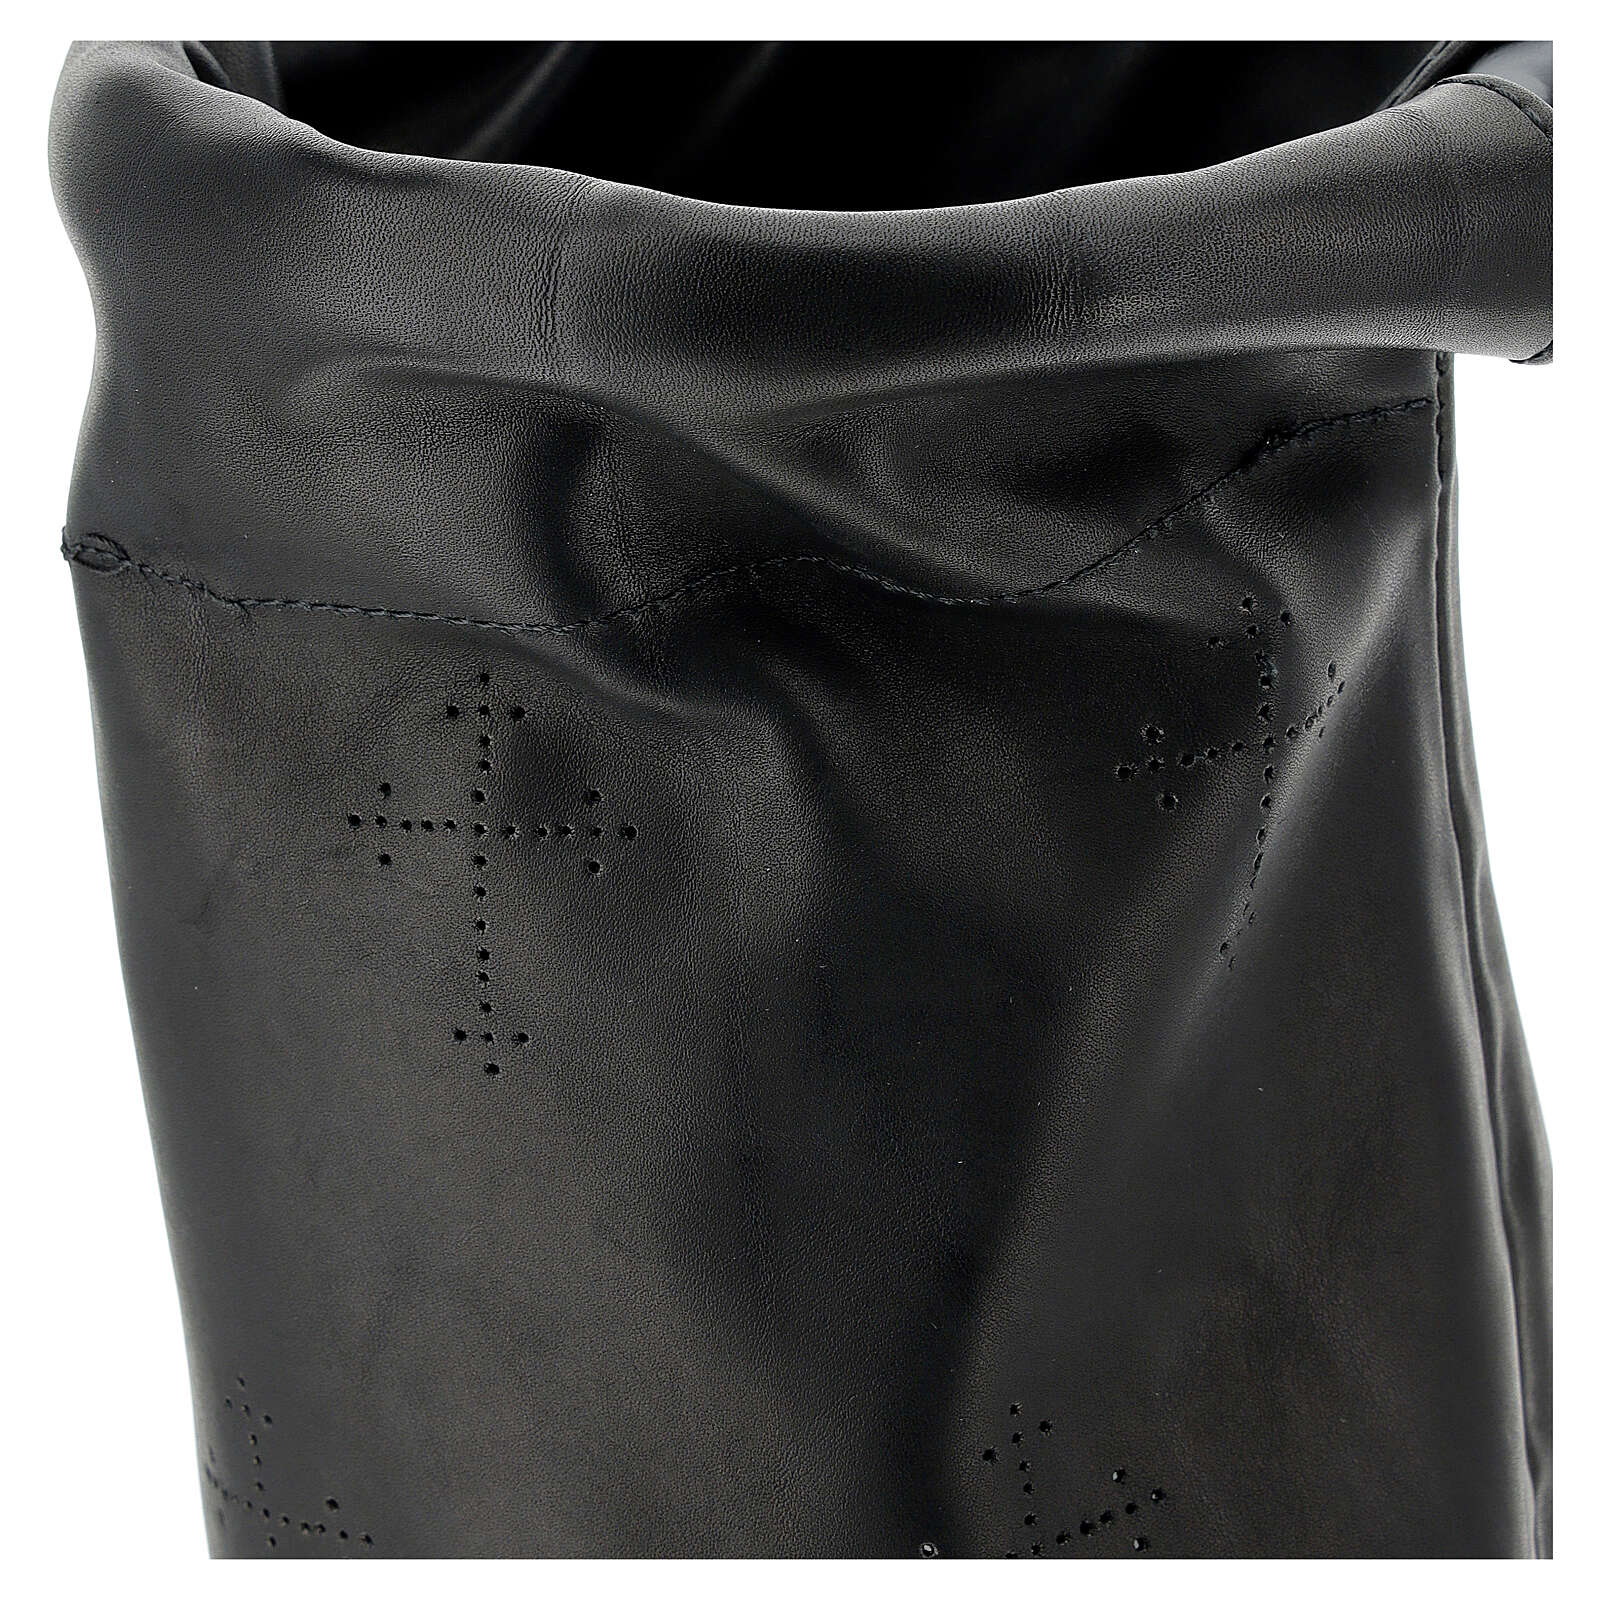 Black leather bag for the collection of alms 3